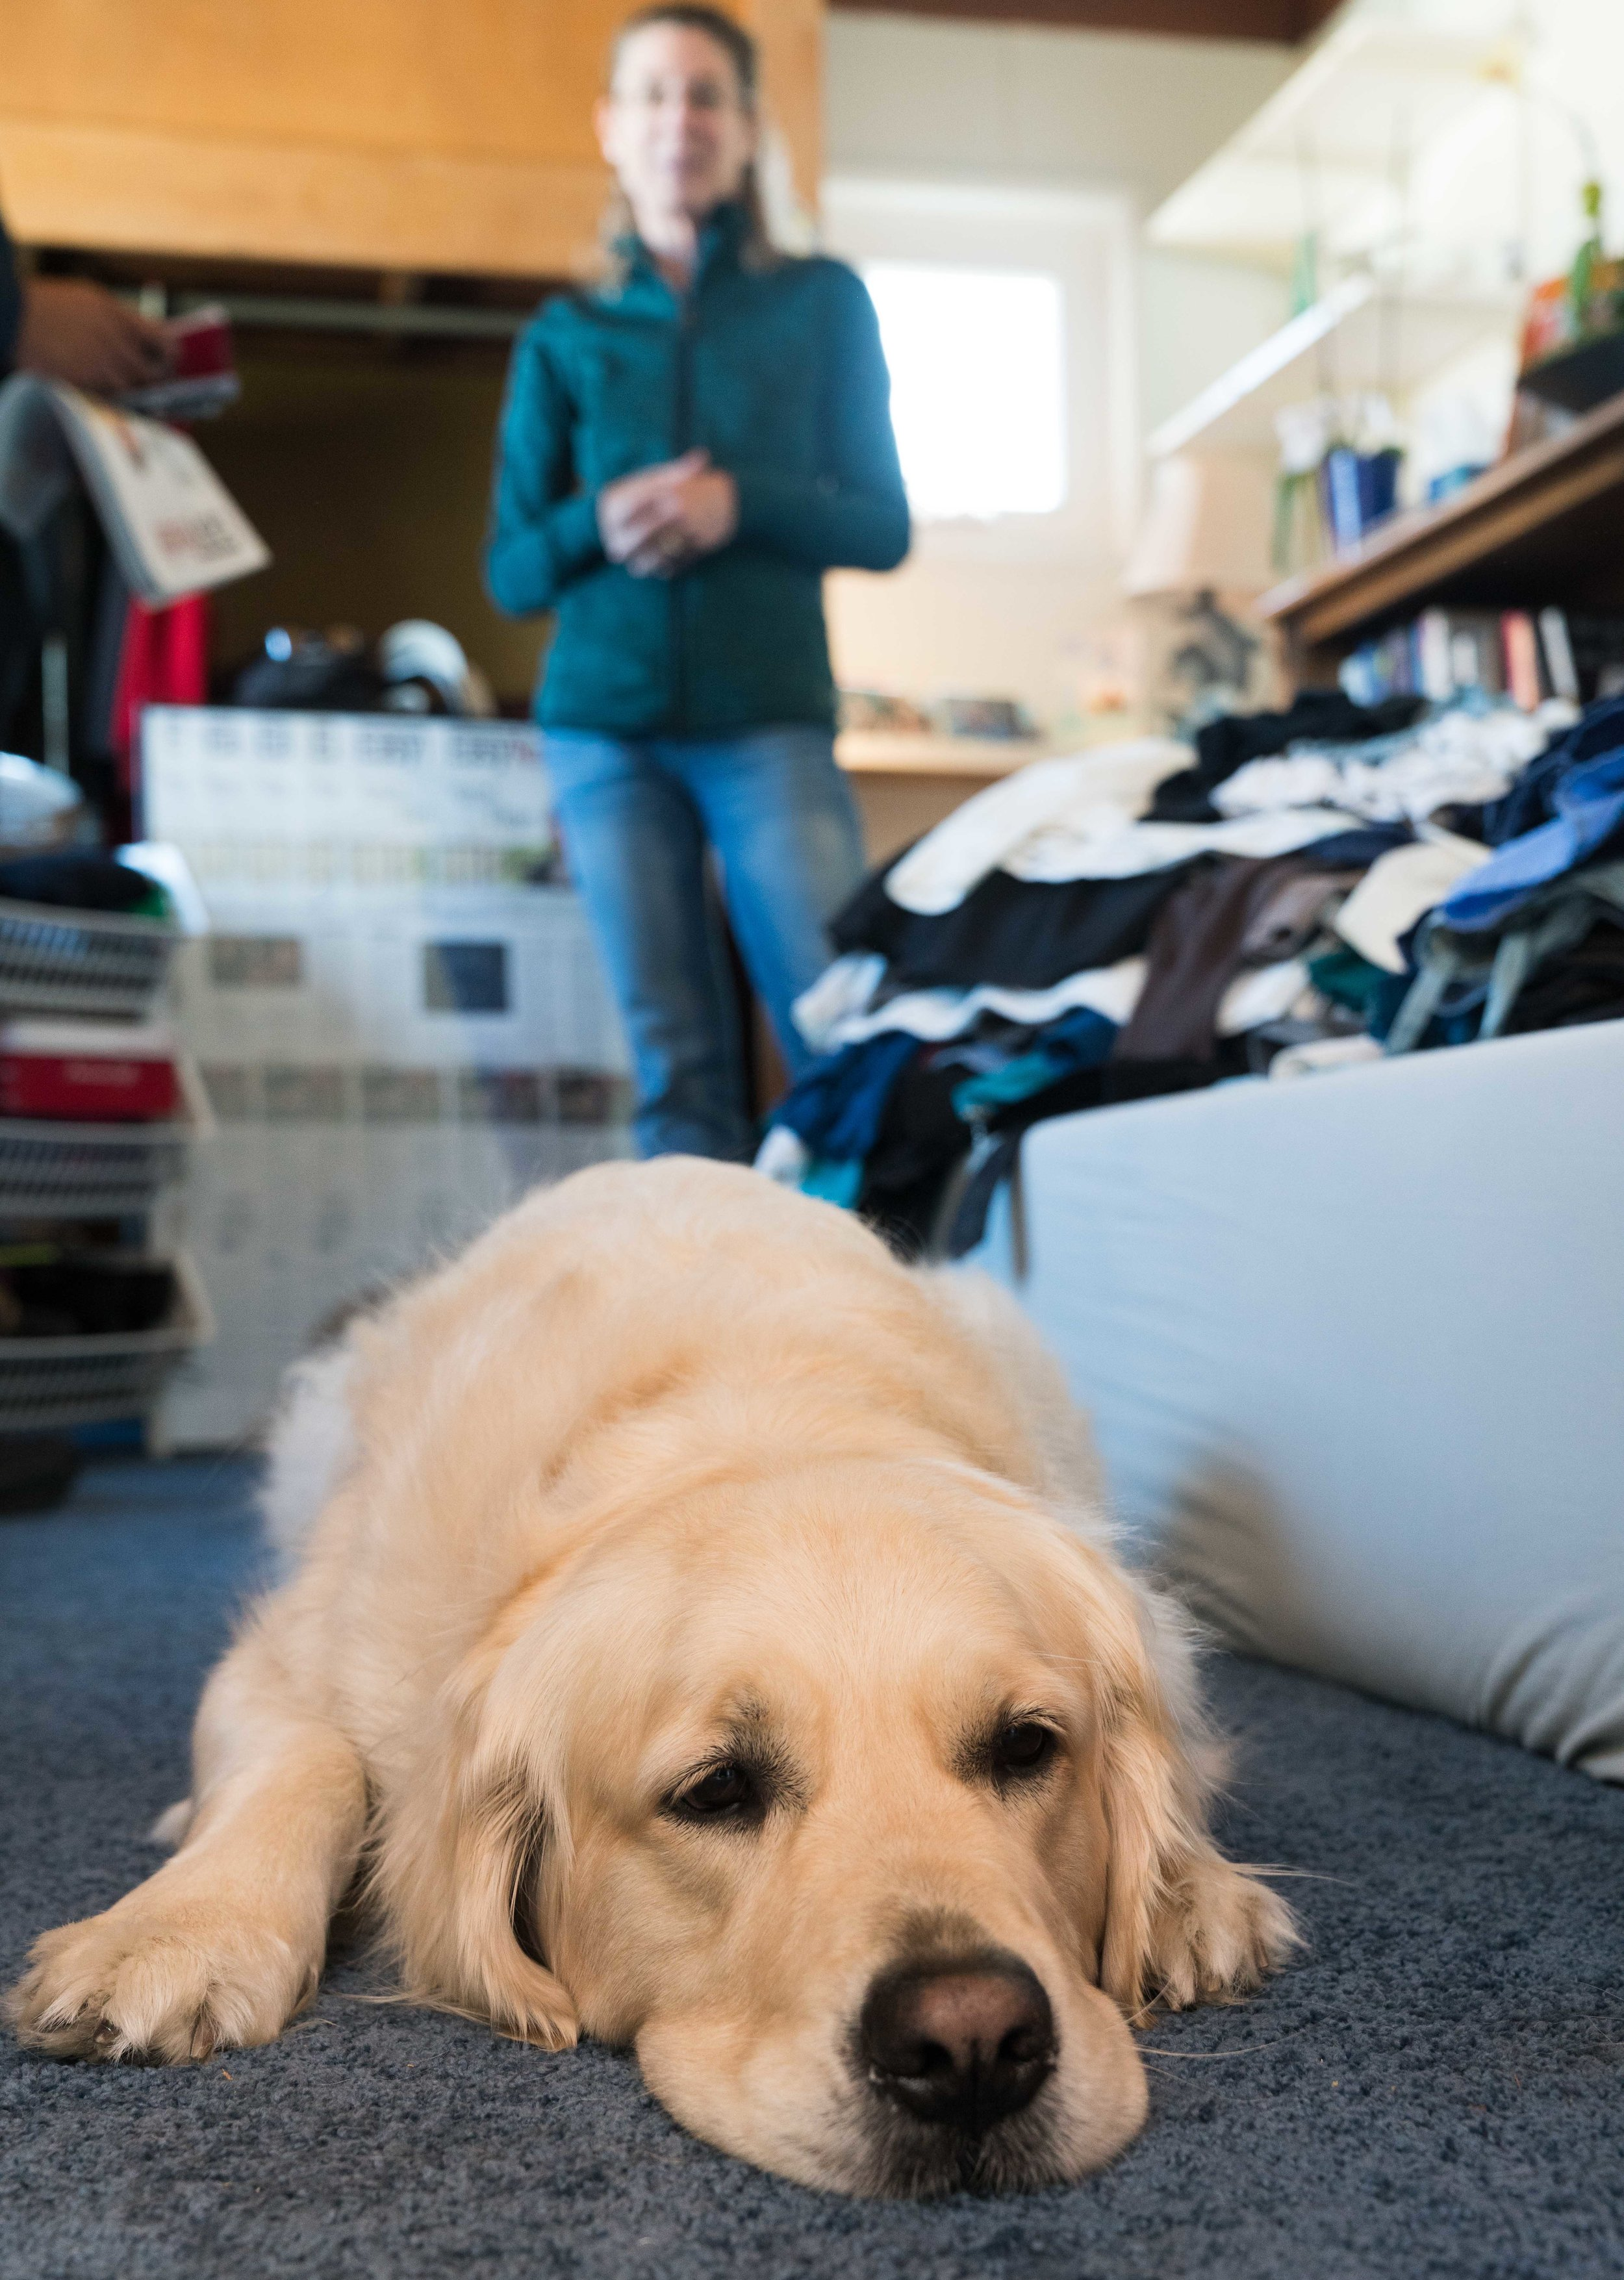 Sam, the family dog, lies on the floor of David Sliff's old room as Kathy Welch, Sliff's mother, stands in the background in Hermosa Beach, California on Saturday, March 17, 2018. Sliff, an SMC student, took his life on December 30, 2017. (Helena Sung/Corsair Photo)